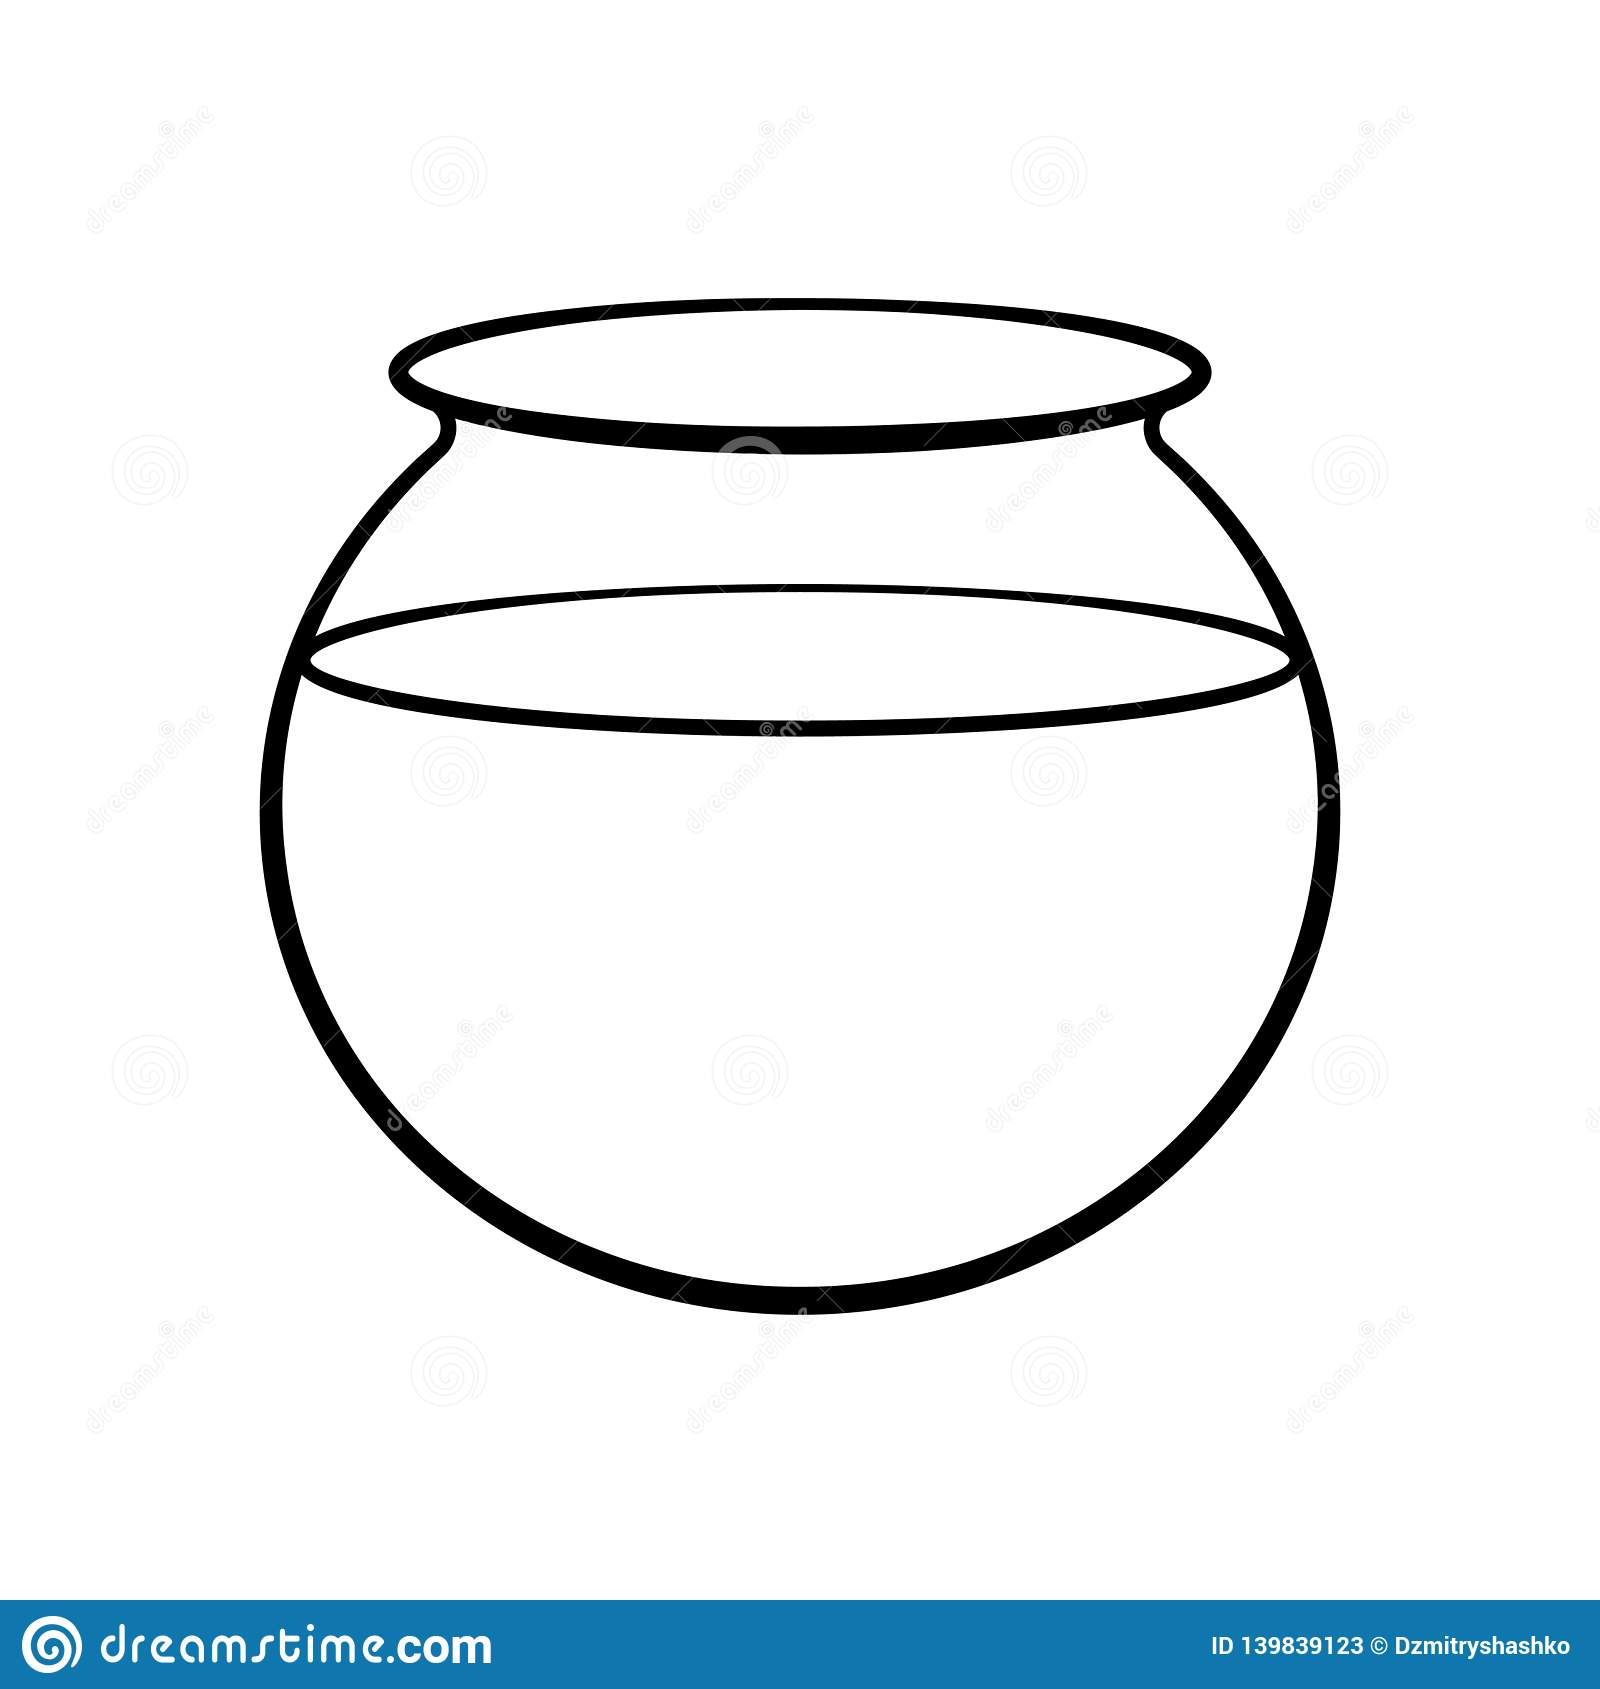 Empty Fish Bowl Outline Icon Stock Vector Illustration Of Isolated Pictogram 139839123